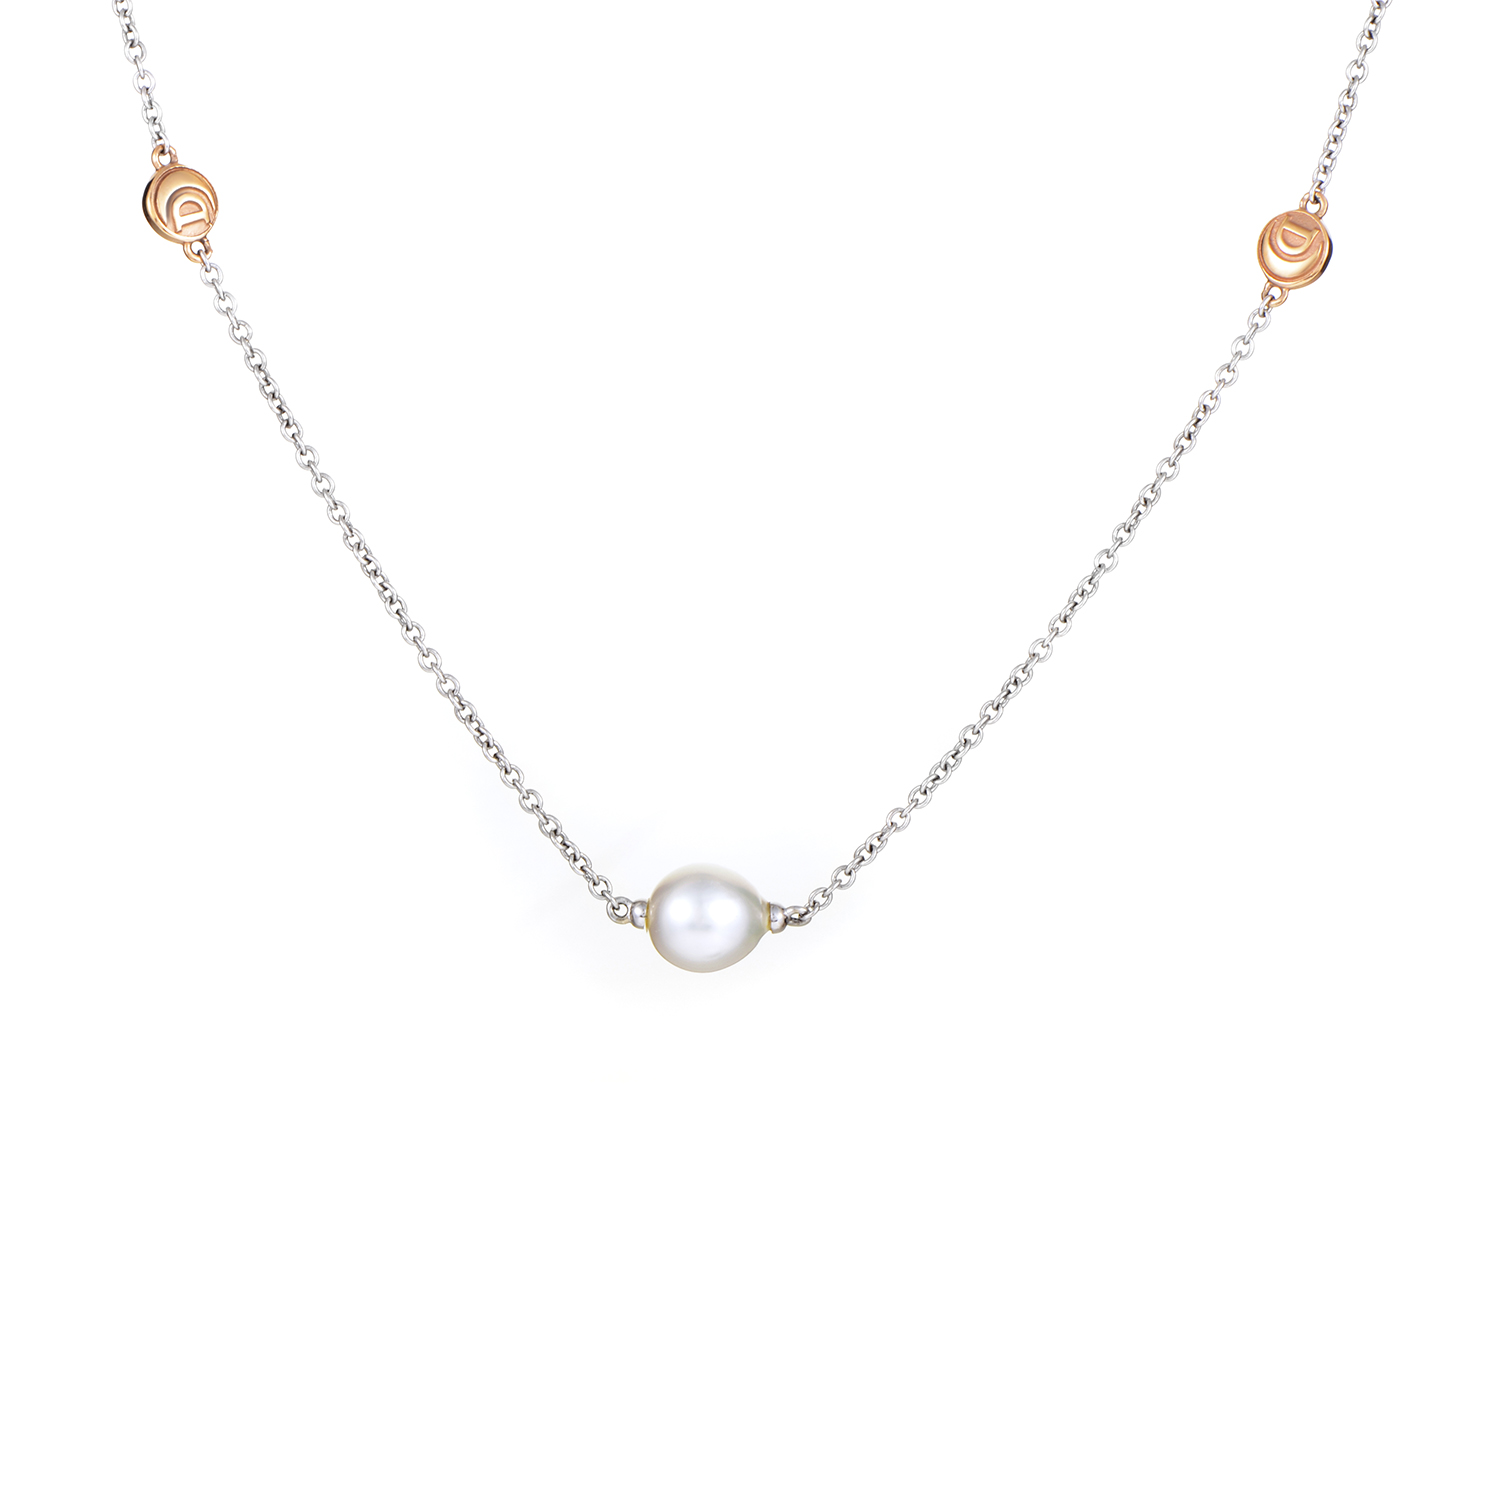 Women's 18K Multi-Tone Gold Pearl Sautoir Necklace